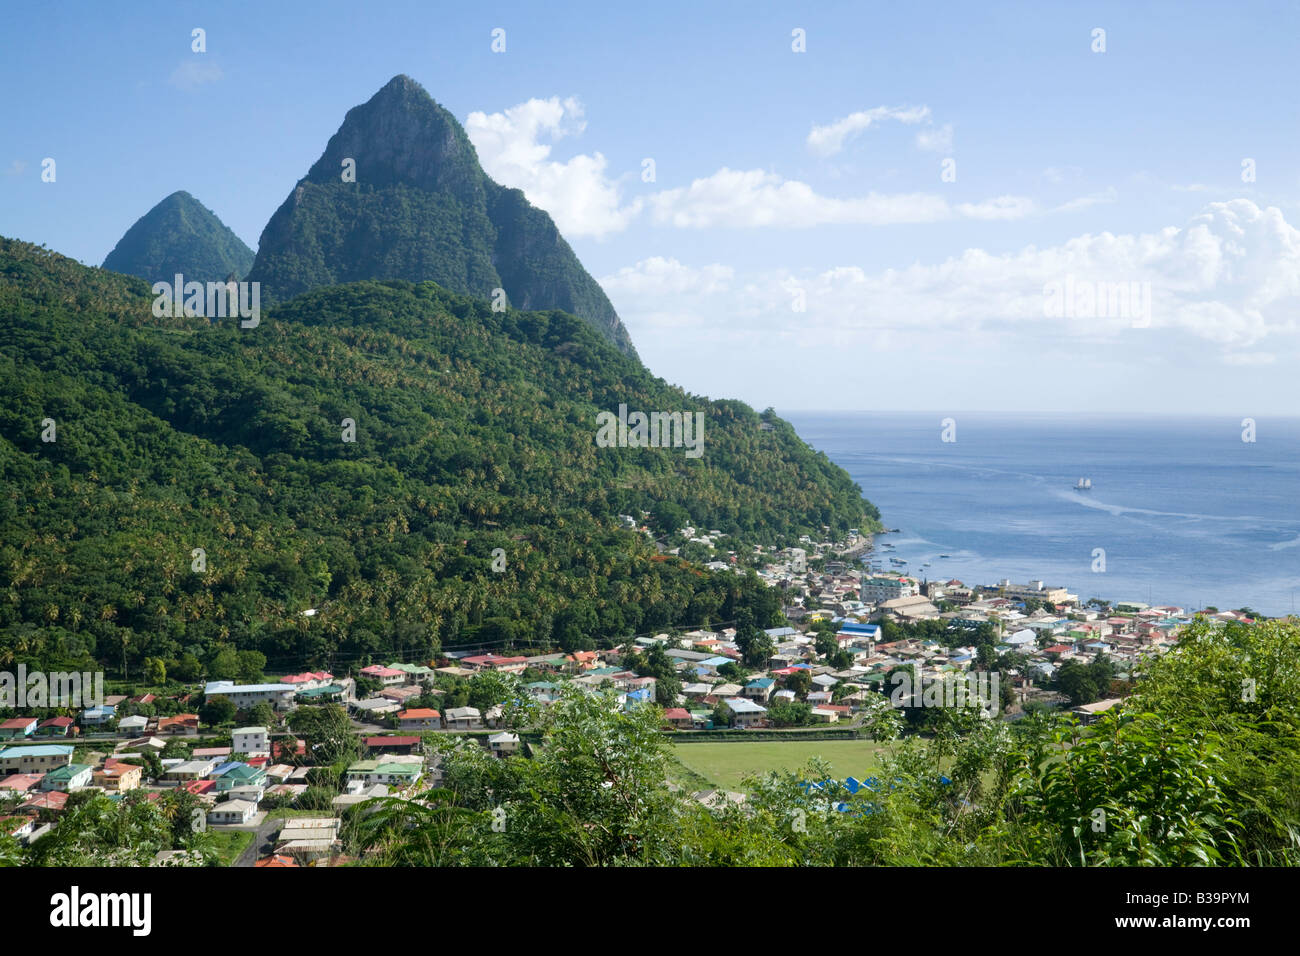 The town of Soufriere and the Pitons, St Lucia, 'West Indies' - Stock Image